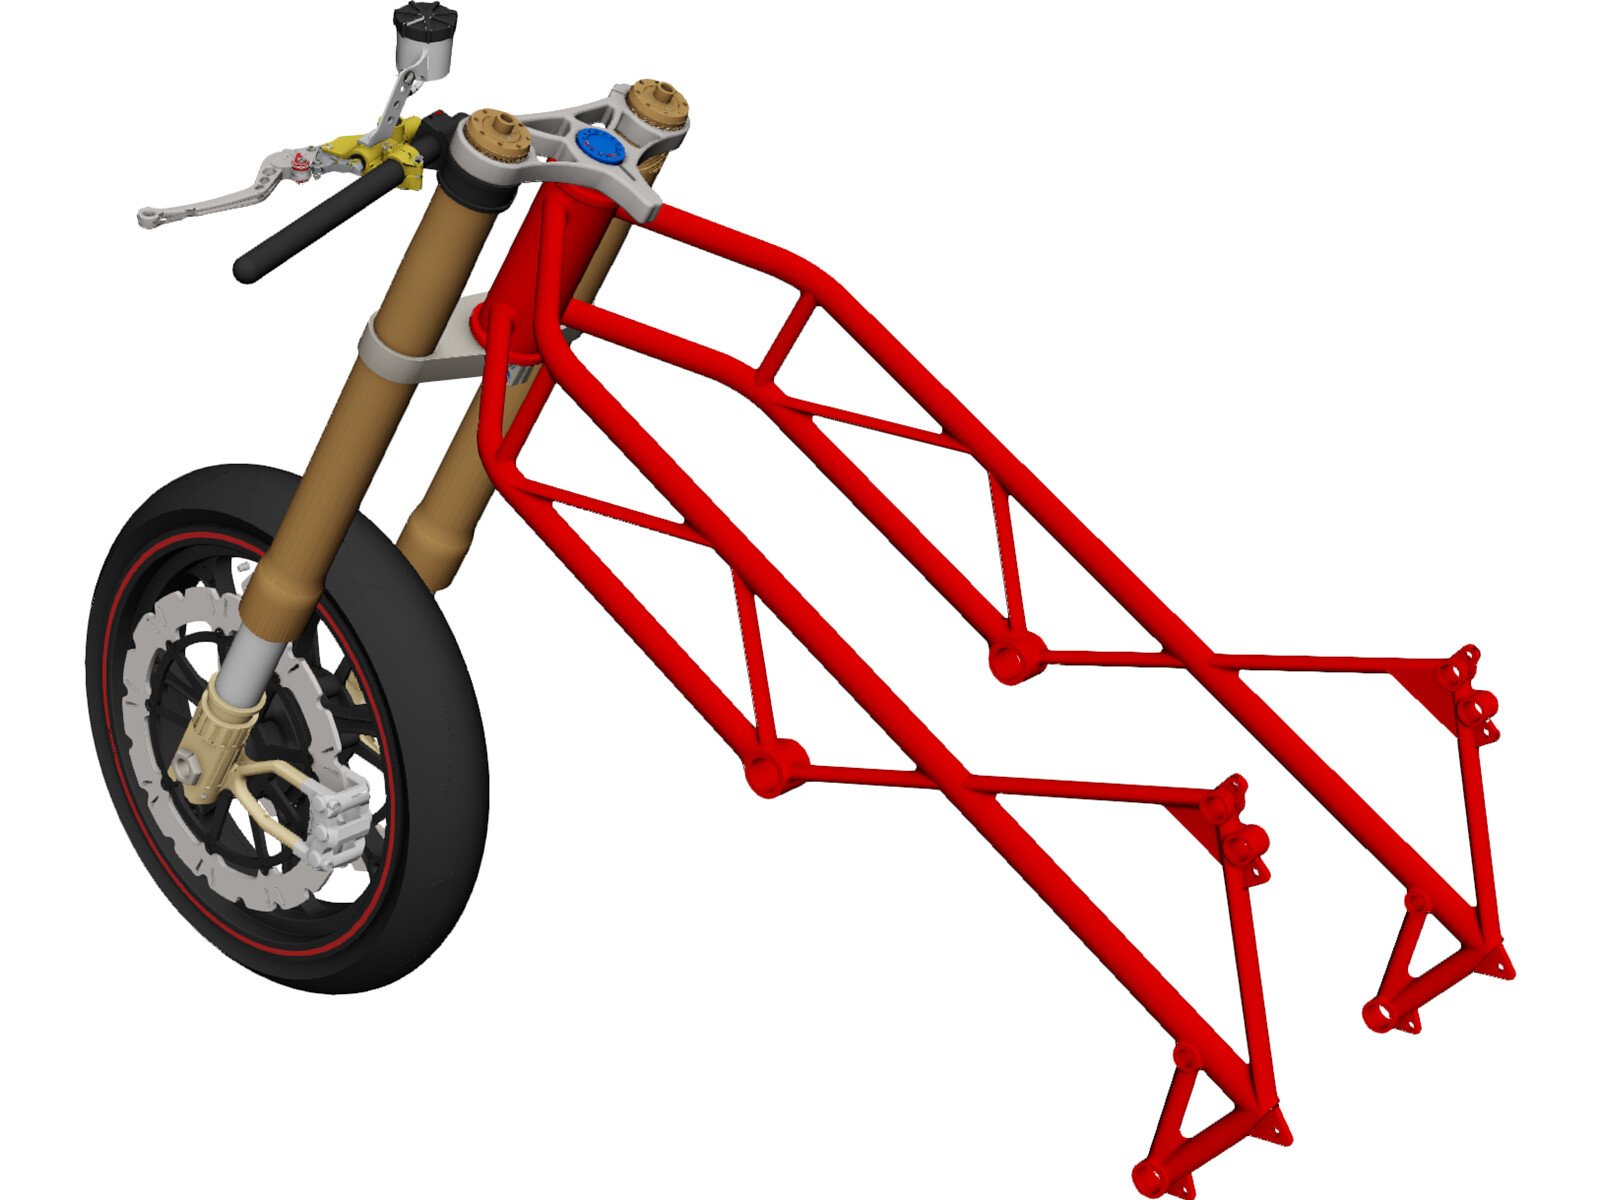 Motorcycle Frame, Wheel and Fork 3D CAD Model